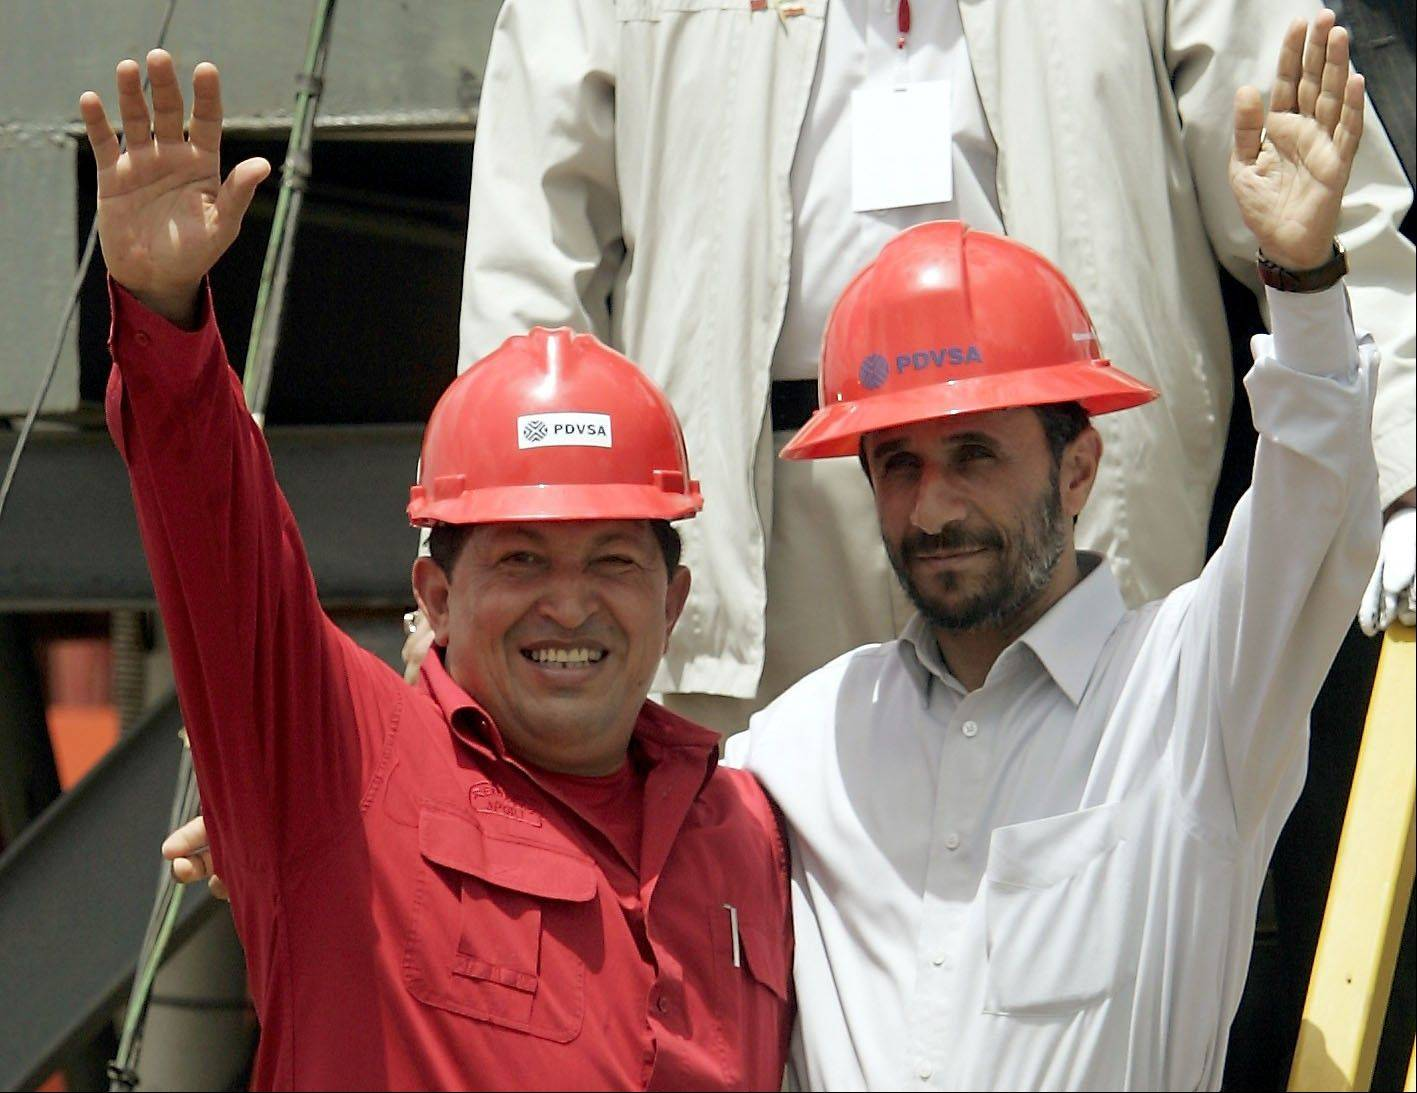 In this Sept. 18, 2006 file photo, Venezuela's President Hugo Chavez, left, and Iran's President Mahmoud Ahmadinejad wave to the press after inaugurating an oil drill in San Tome, Venezuela.